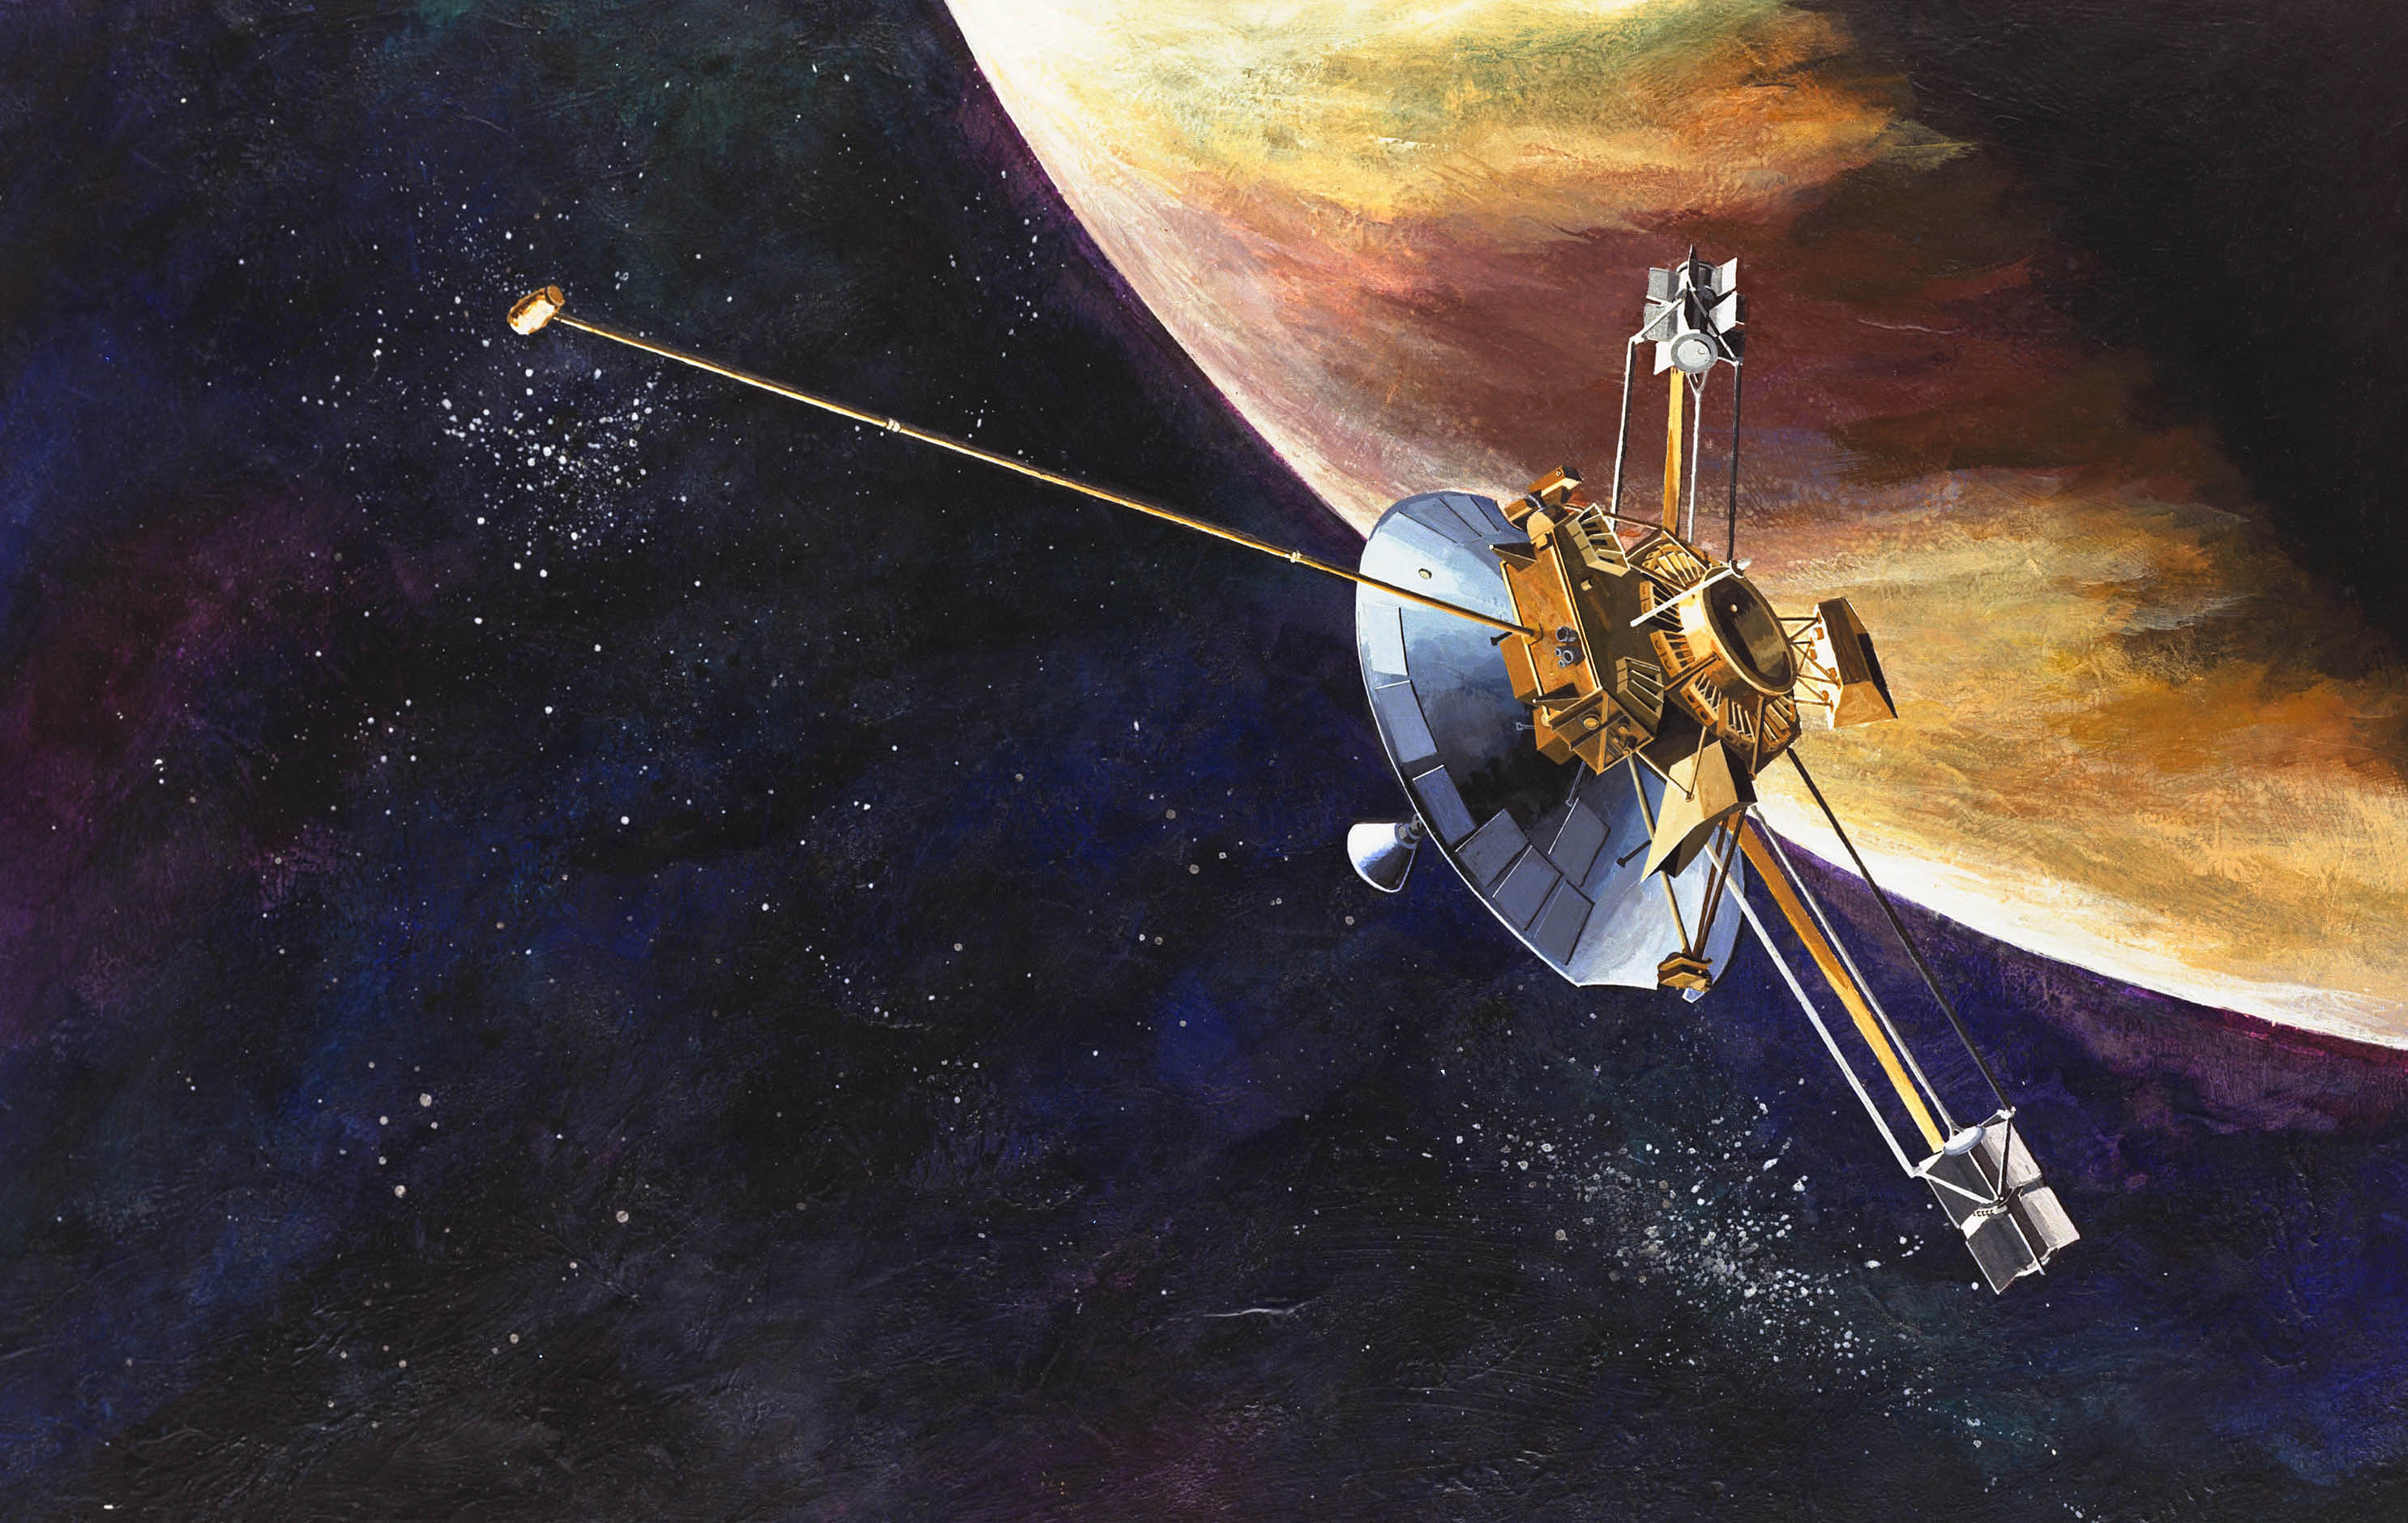 Illustrated Pioneer 10 at Jupiter